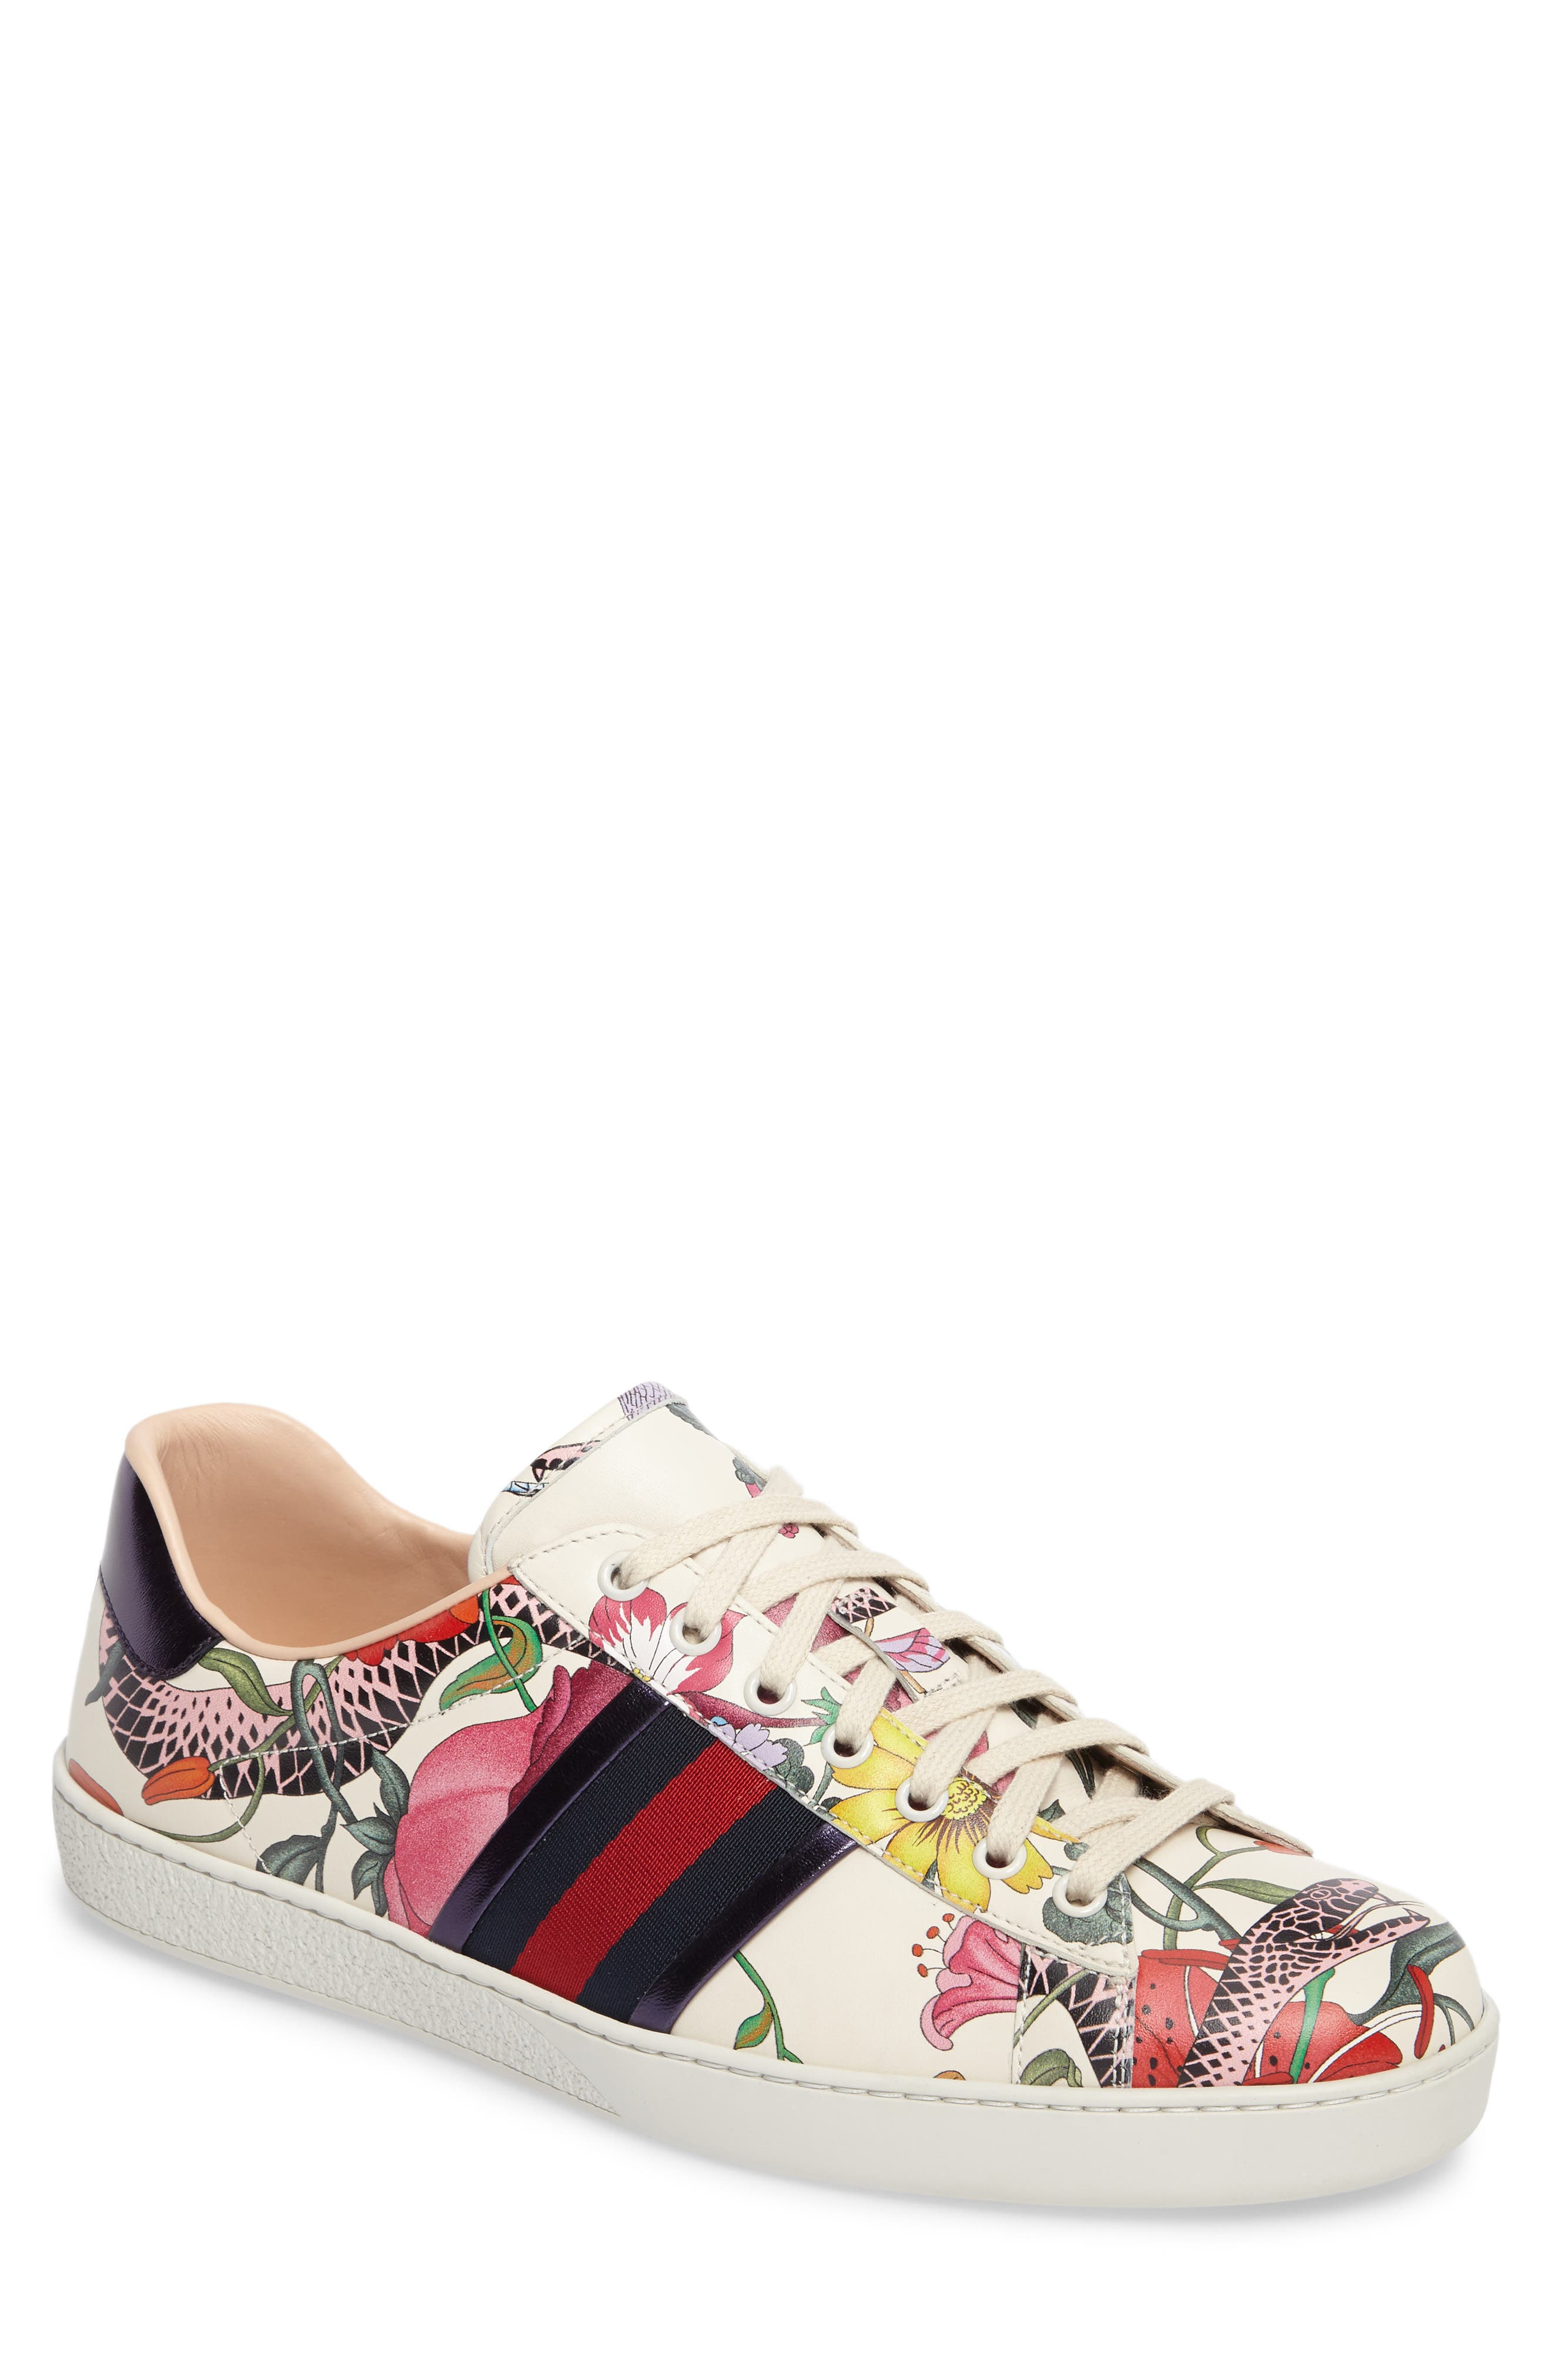 Main Image - Gucci New Ace Floral Dino Sneaker (Men)